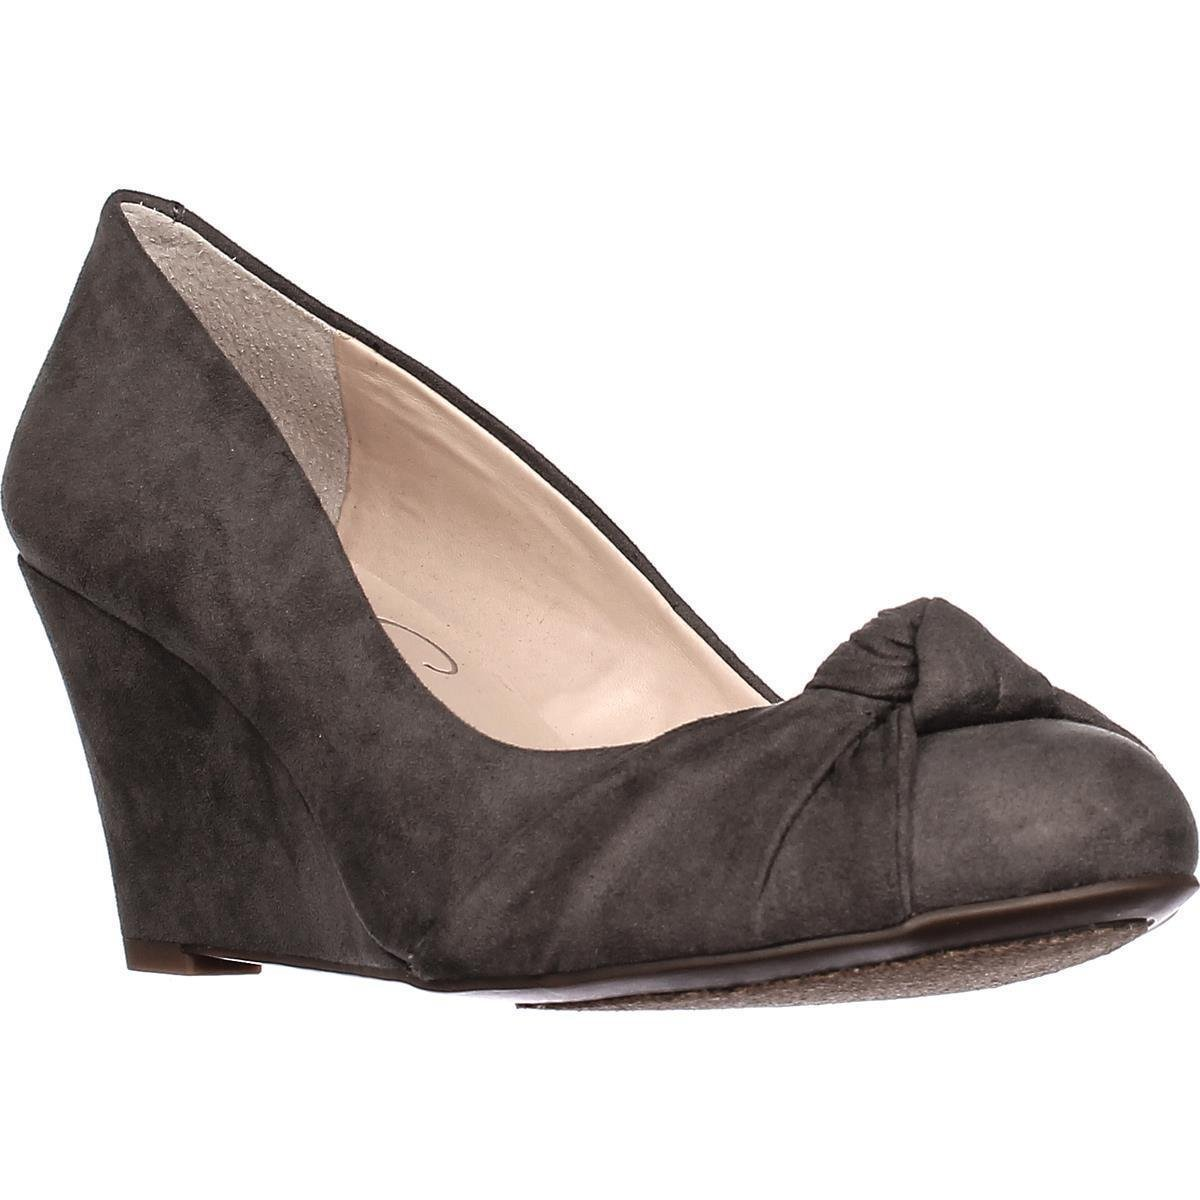 Jessica Simpson Women's Siennah Wedge Pump B01N4EWWCZ 9.5 B(M) US|Gray